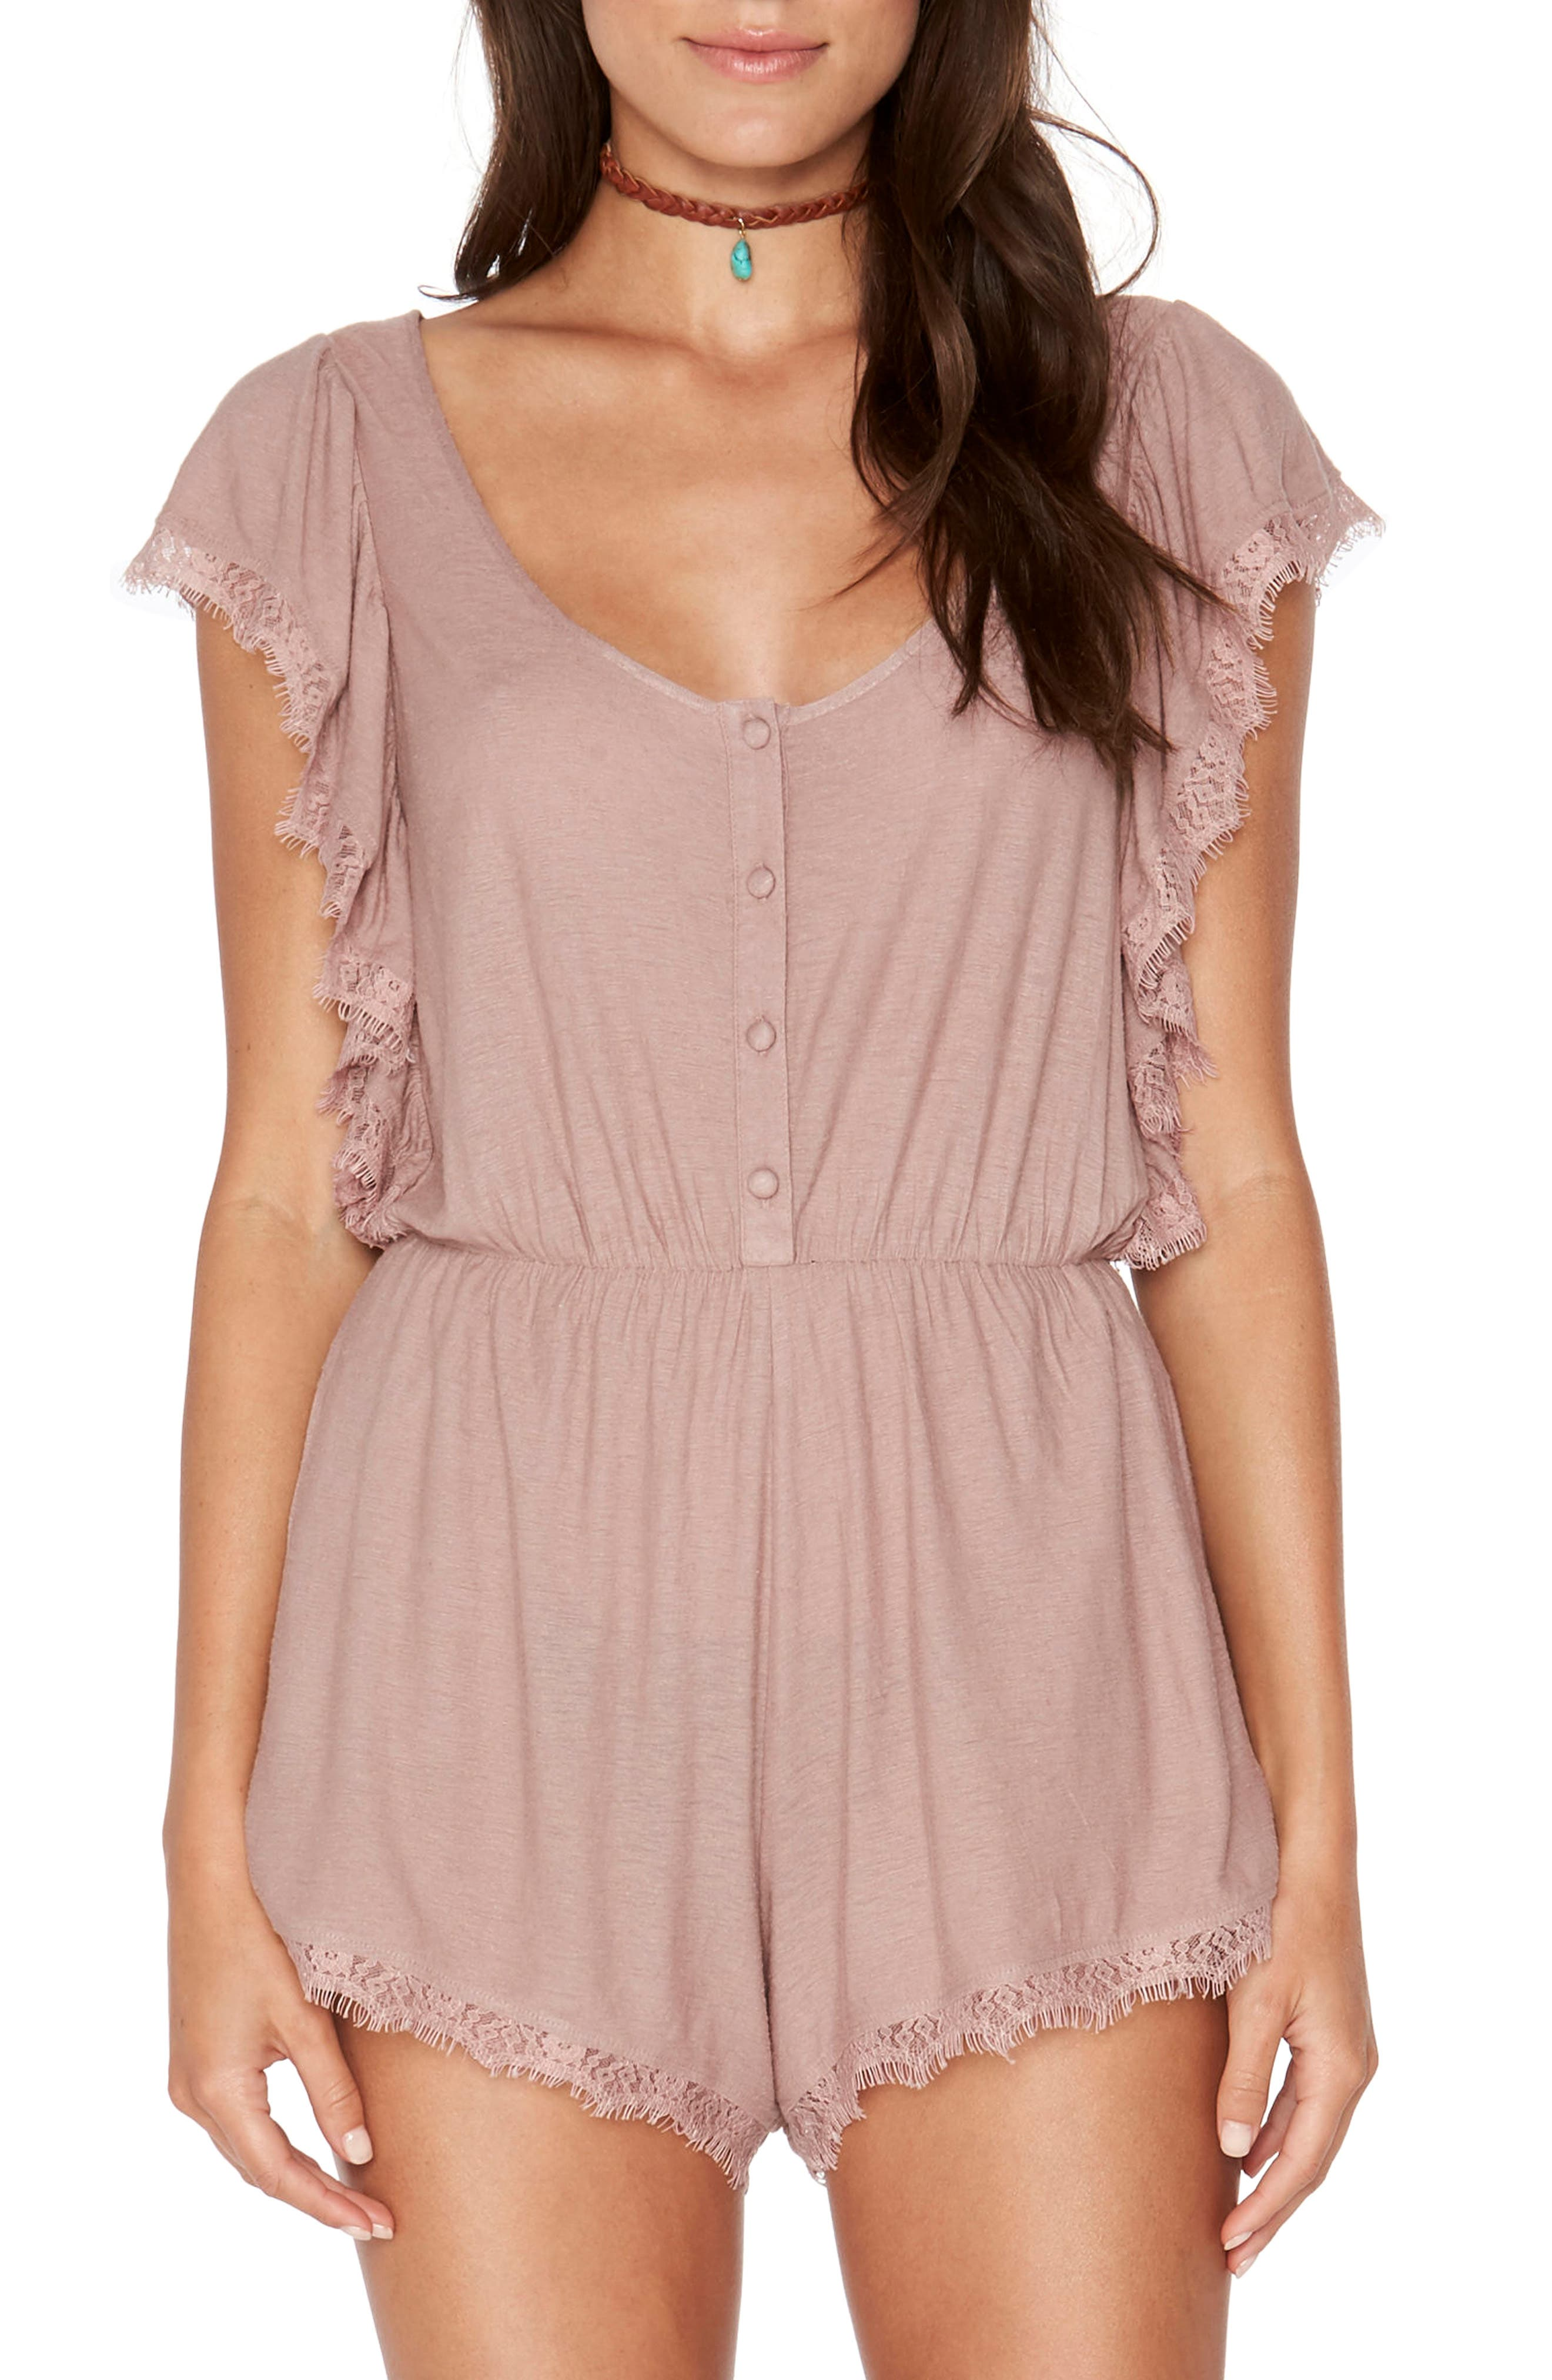 Sweet Life Romper,                         Main,                         color, Dusty Pear